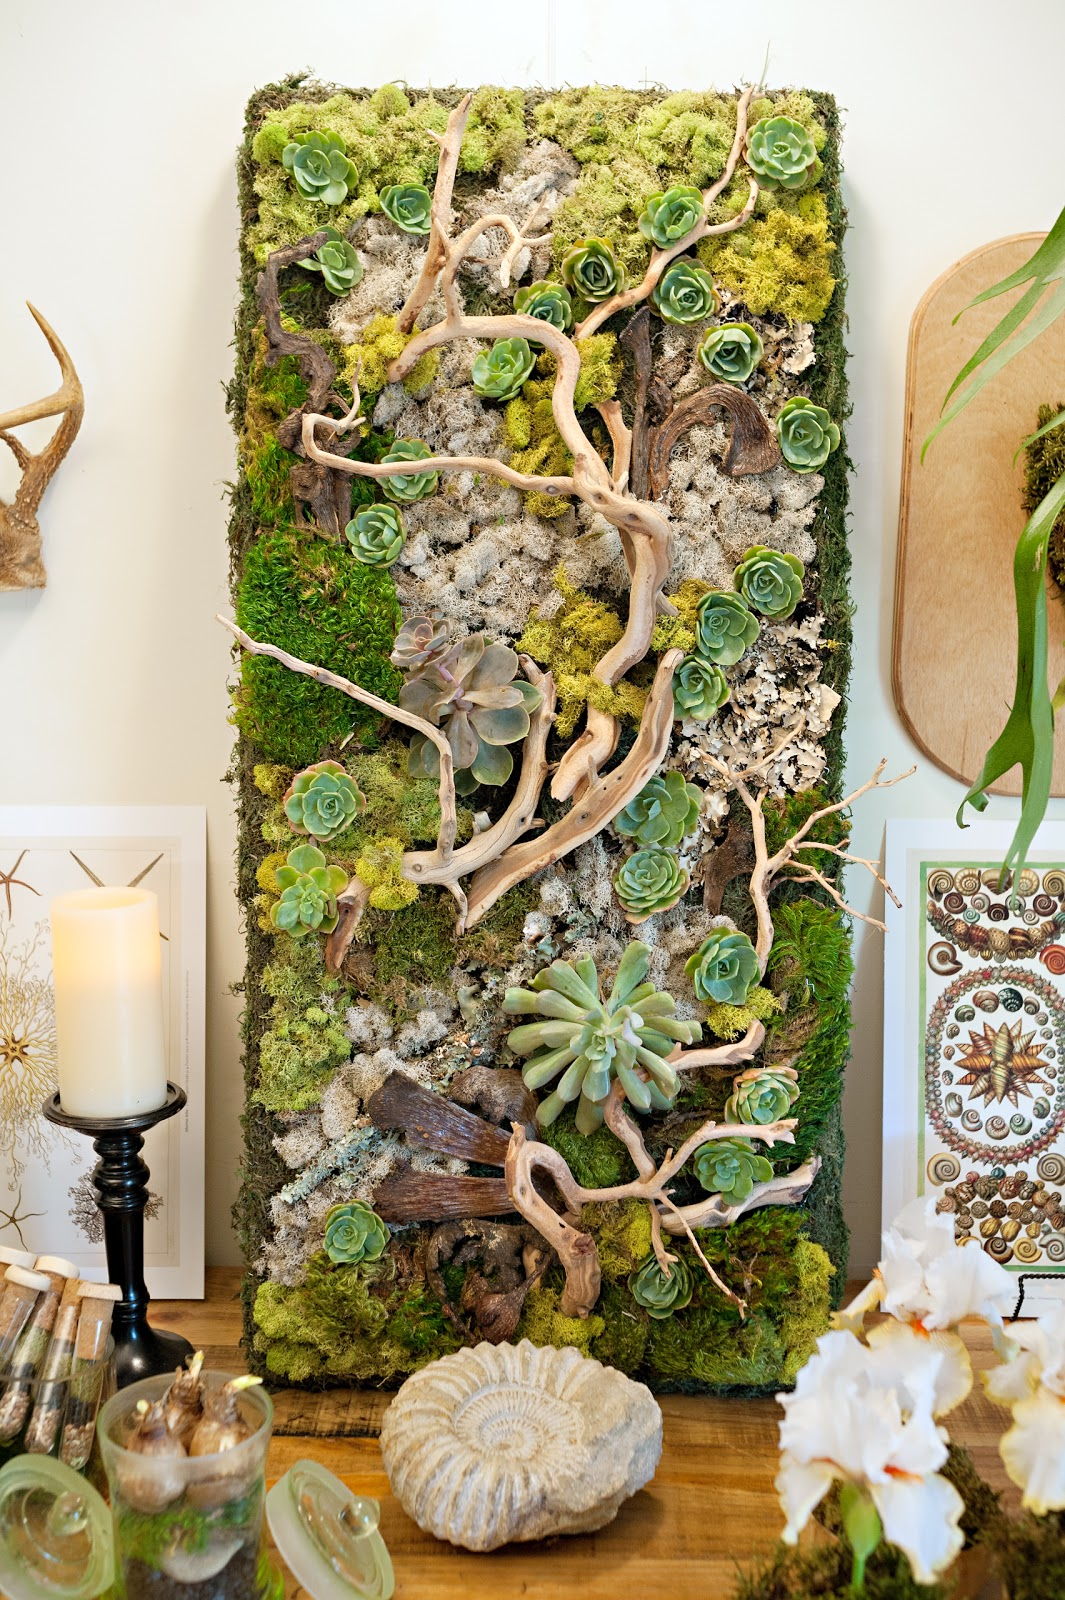 10 embellished wall panel showcases succulents and driftwood